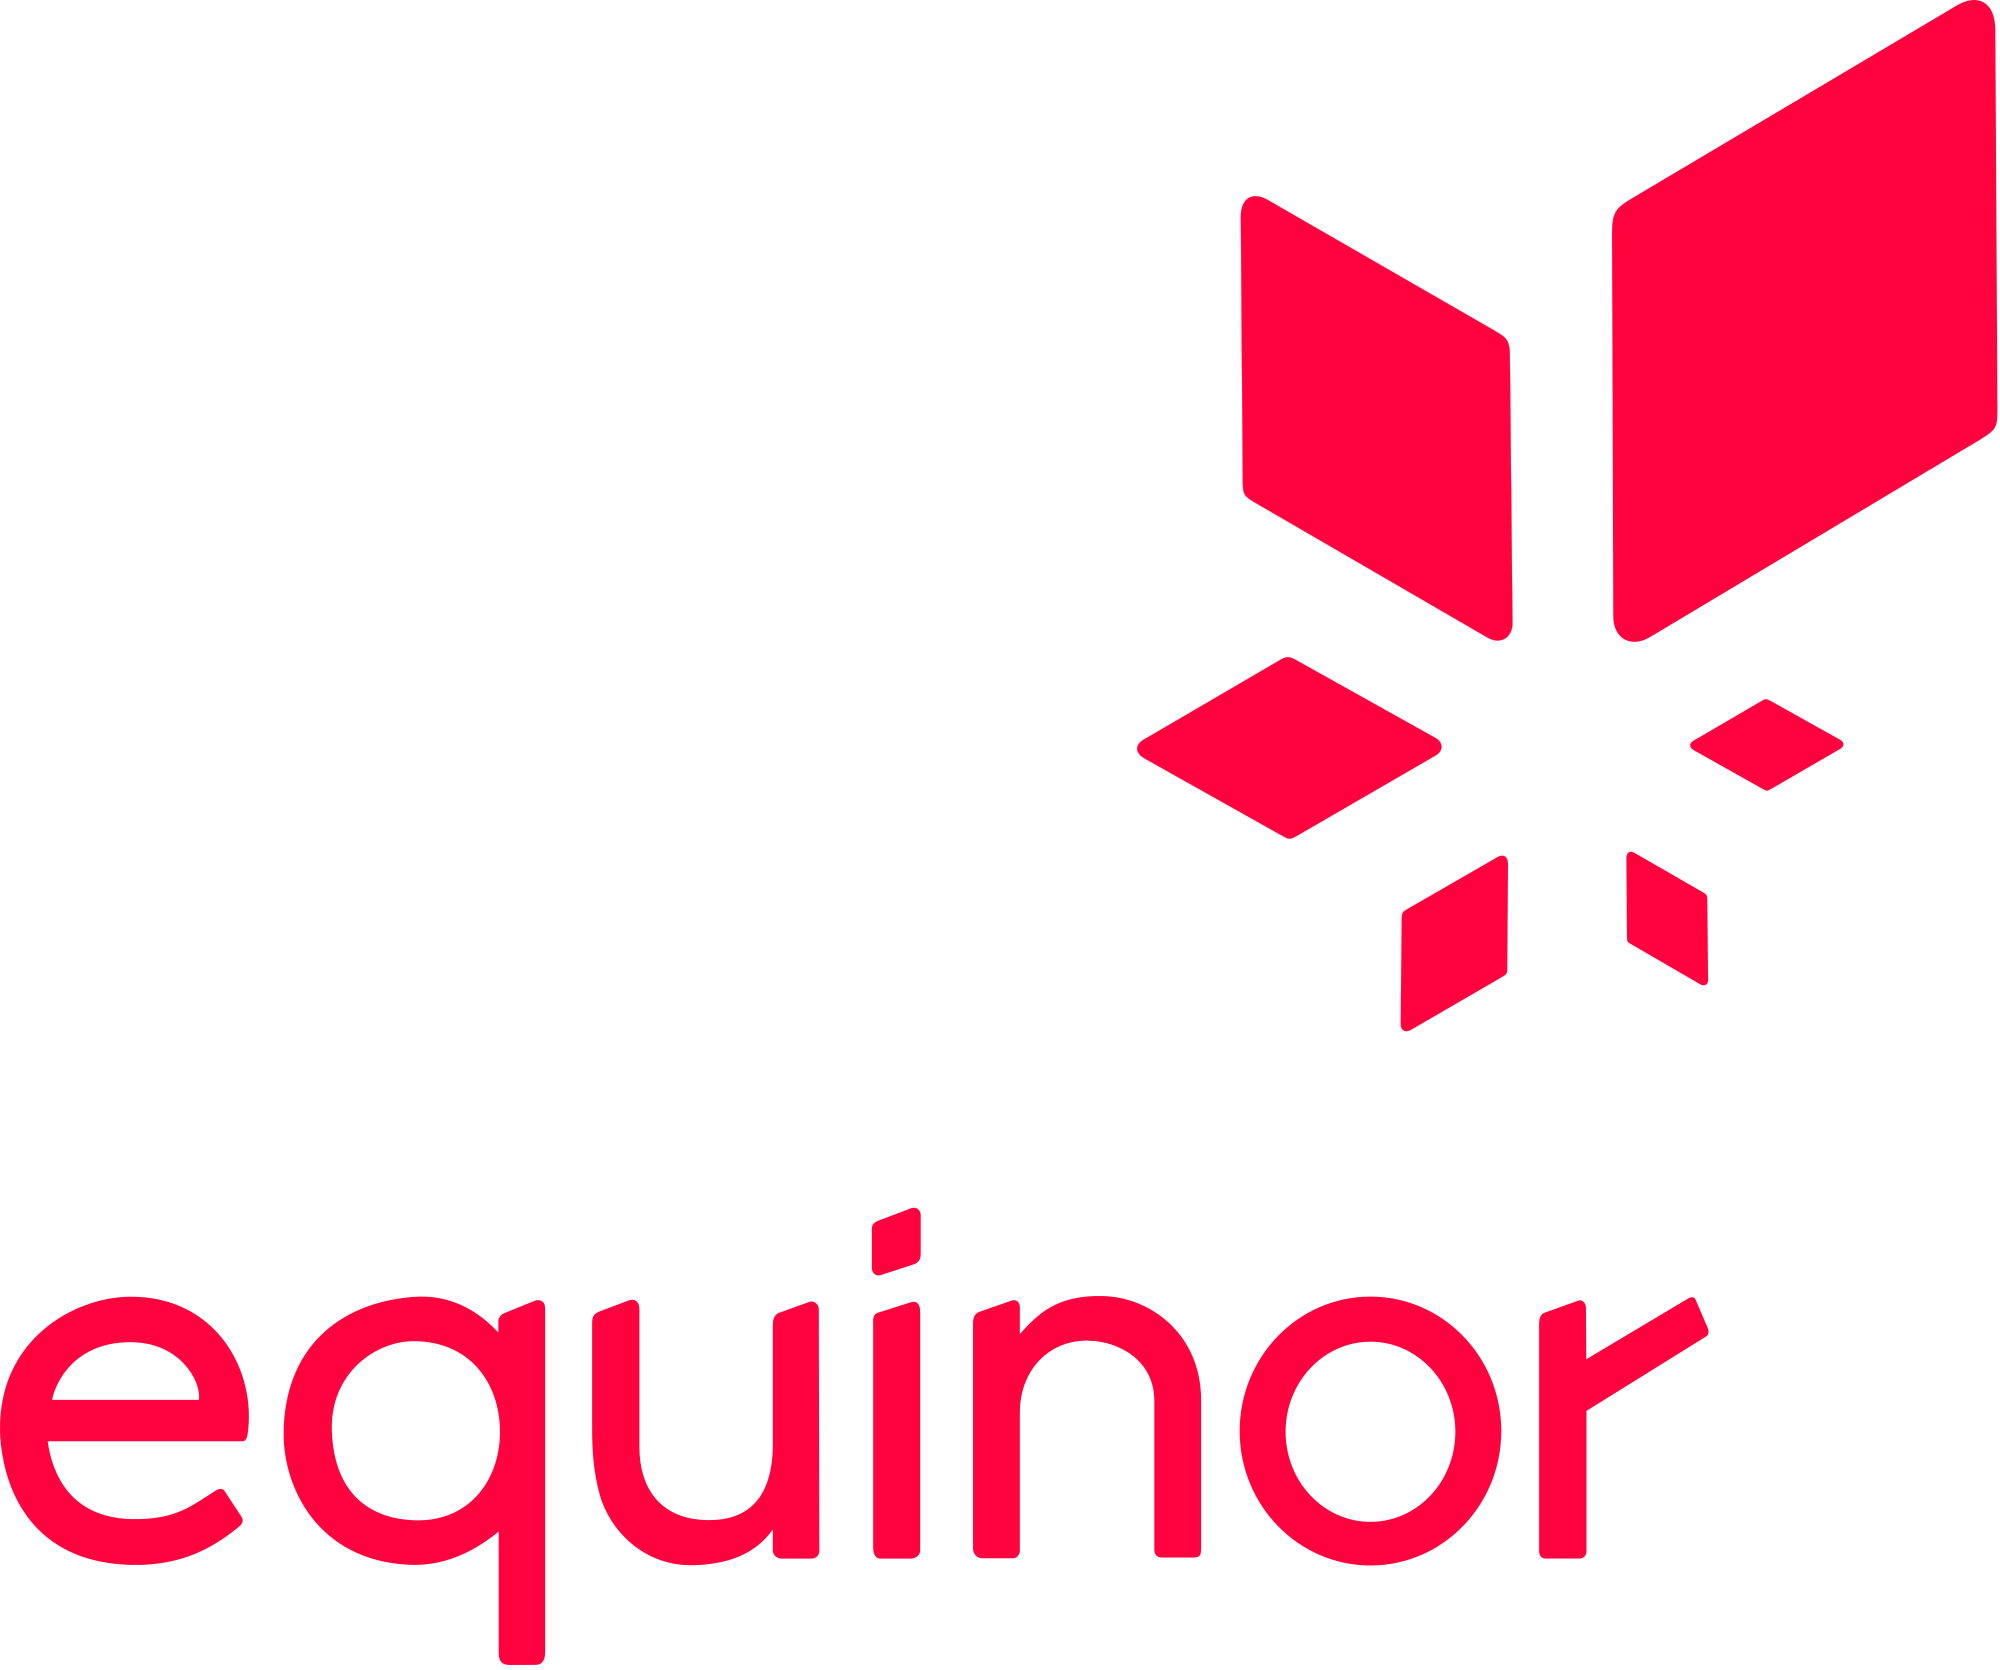 Equinor to cut jobs, considering oil price fall